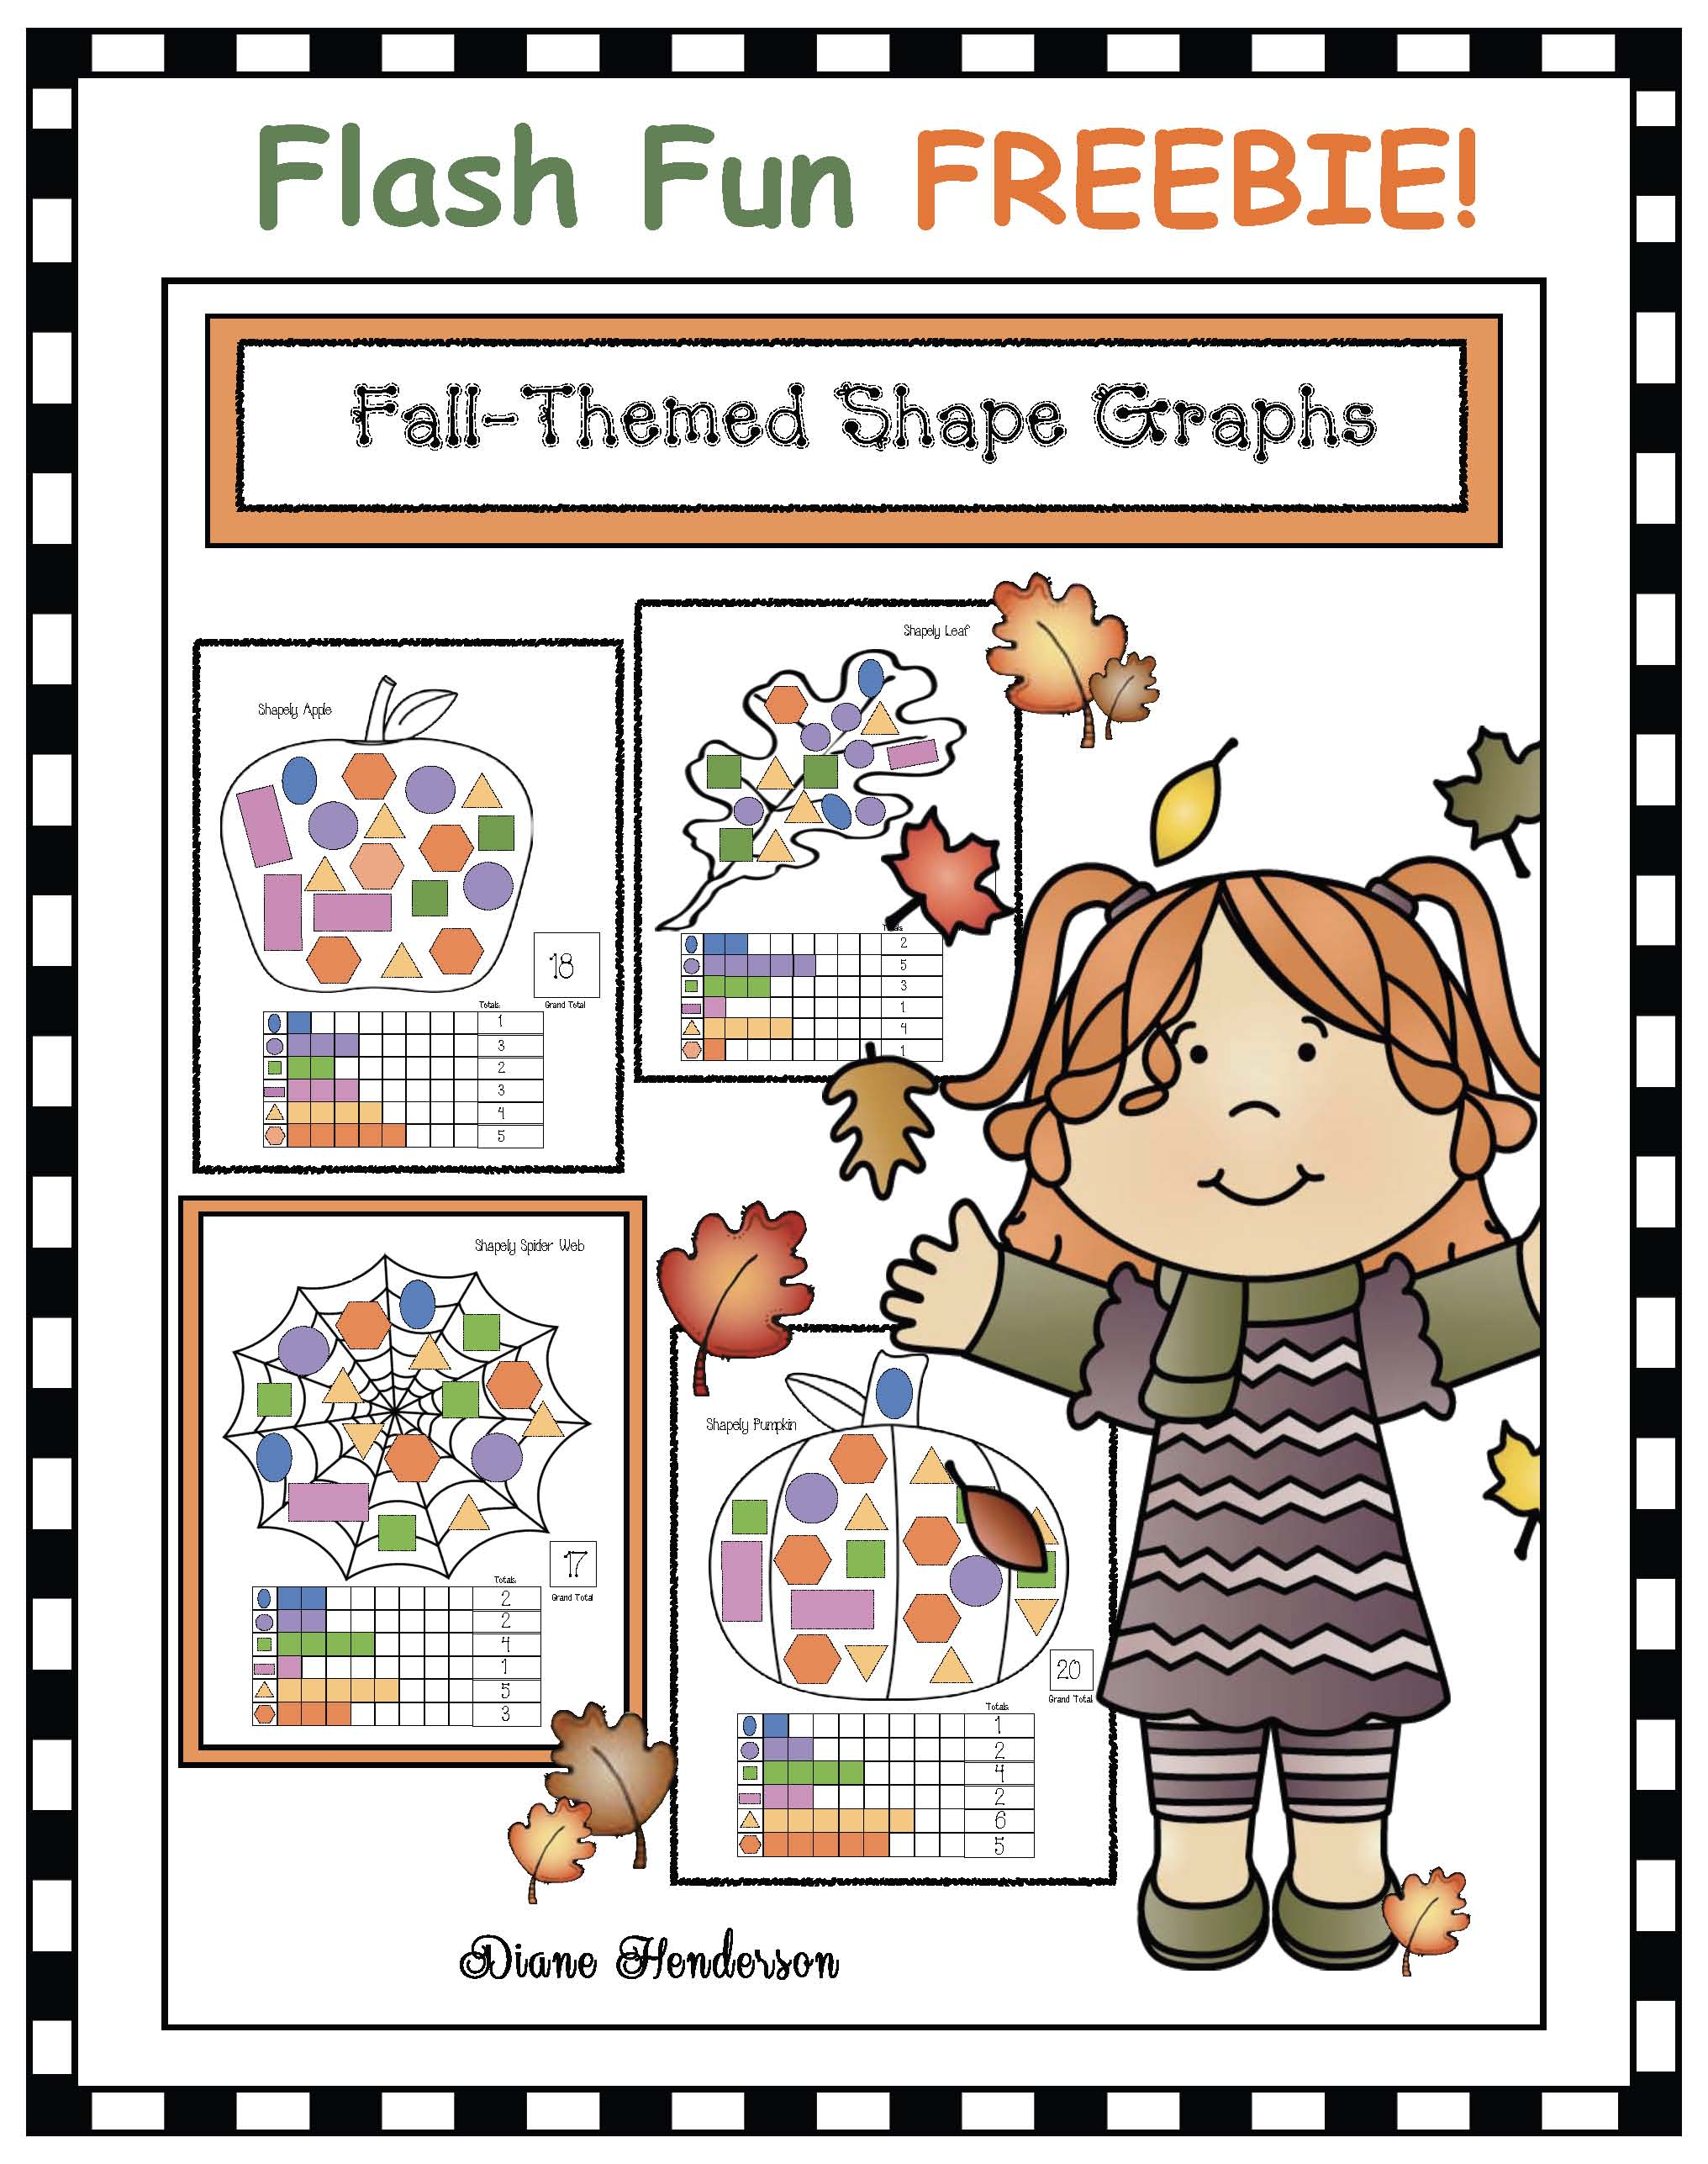 fall graphing, halloween games, halloween activities, shape activities, halloween shape activities, shape crafts, hexagon activities, shape games, halloween graphing activities, 2D shape centers,haunted house craft